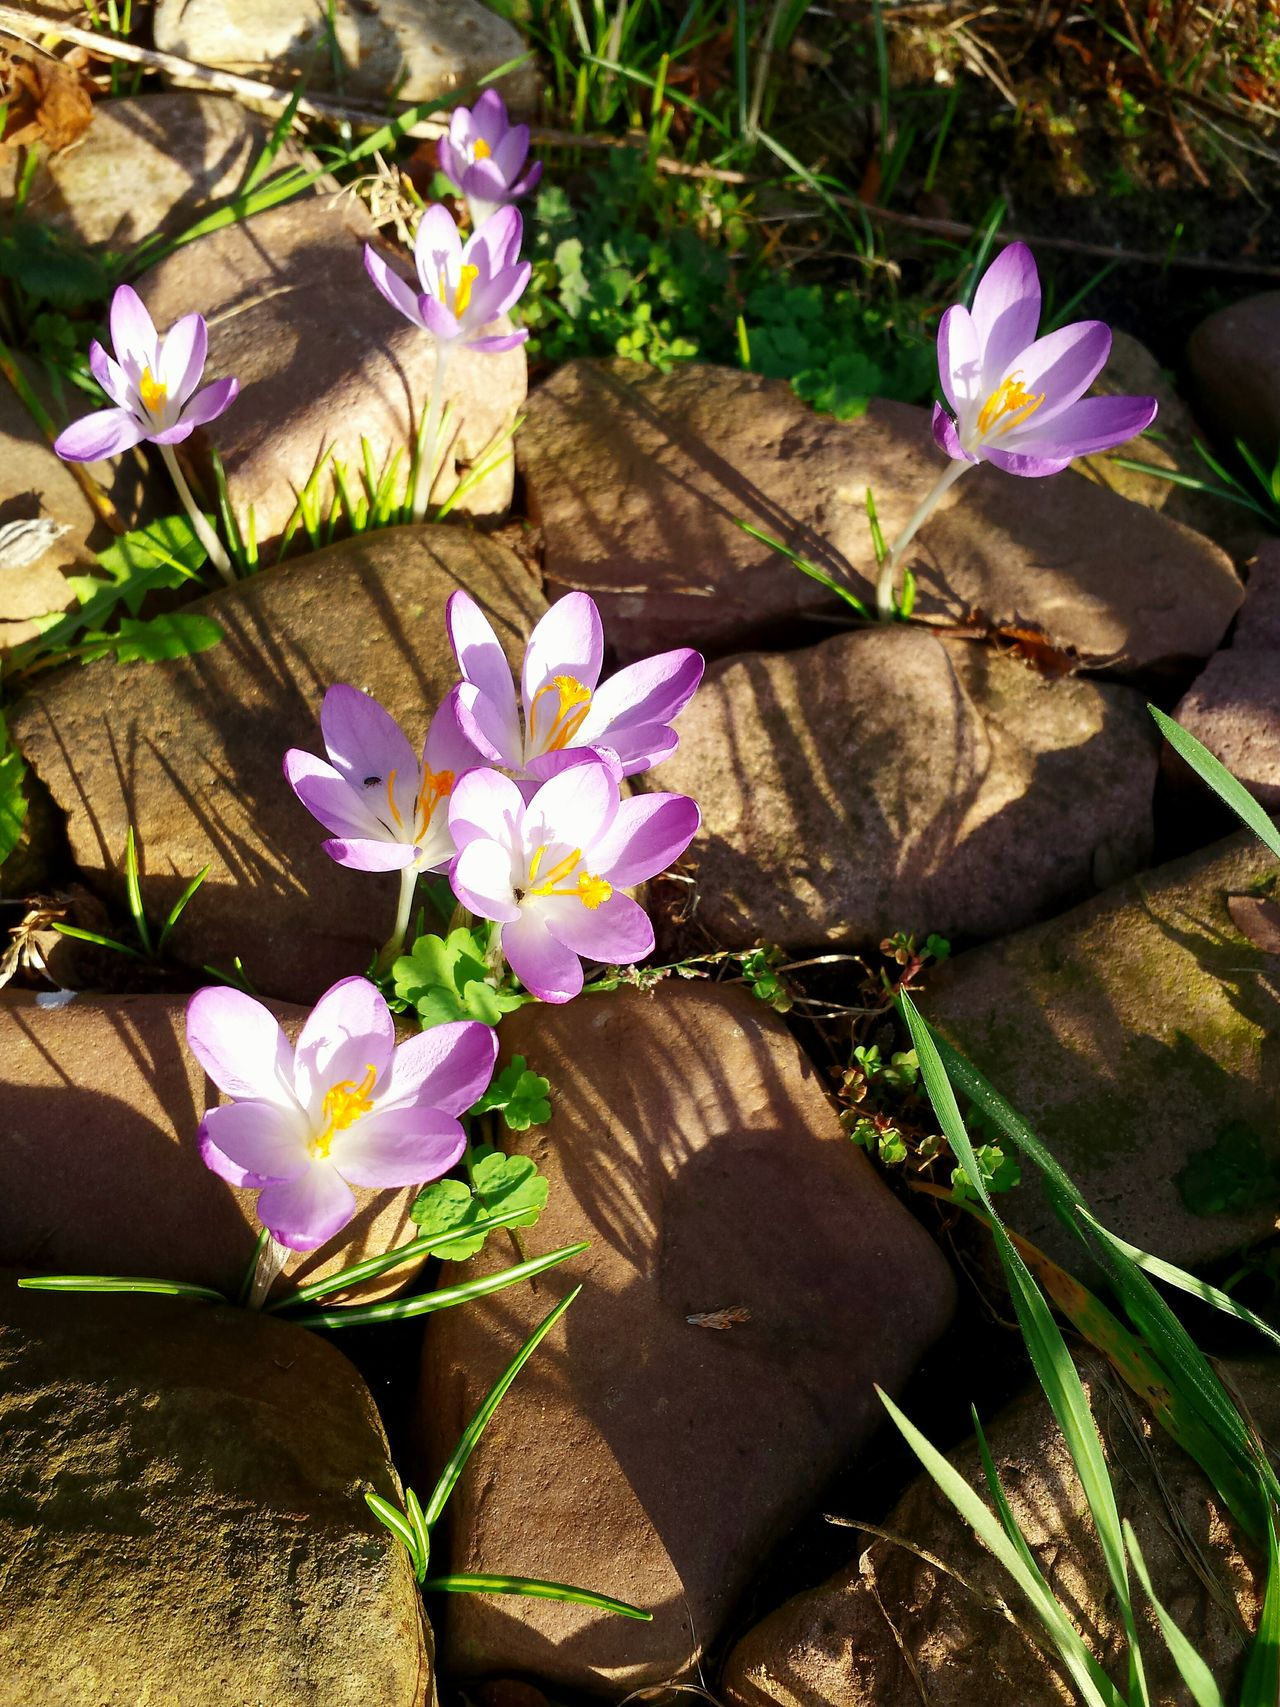 Flower Freshness Beauty In Nature Nature Fragility Growth Petal Plant Flower Head Purple High Angle View Outdoors Leaf Sunlight Blooming Day Feldsteine Close-up Light And Shadow Ladyphotographerofthemonth Close Up Wonderful Springtime Crocus Springtime Stones Composition